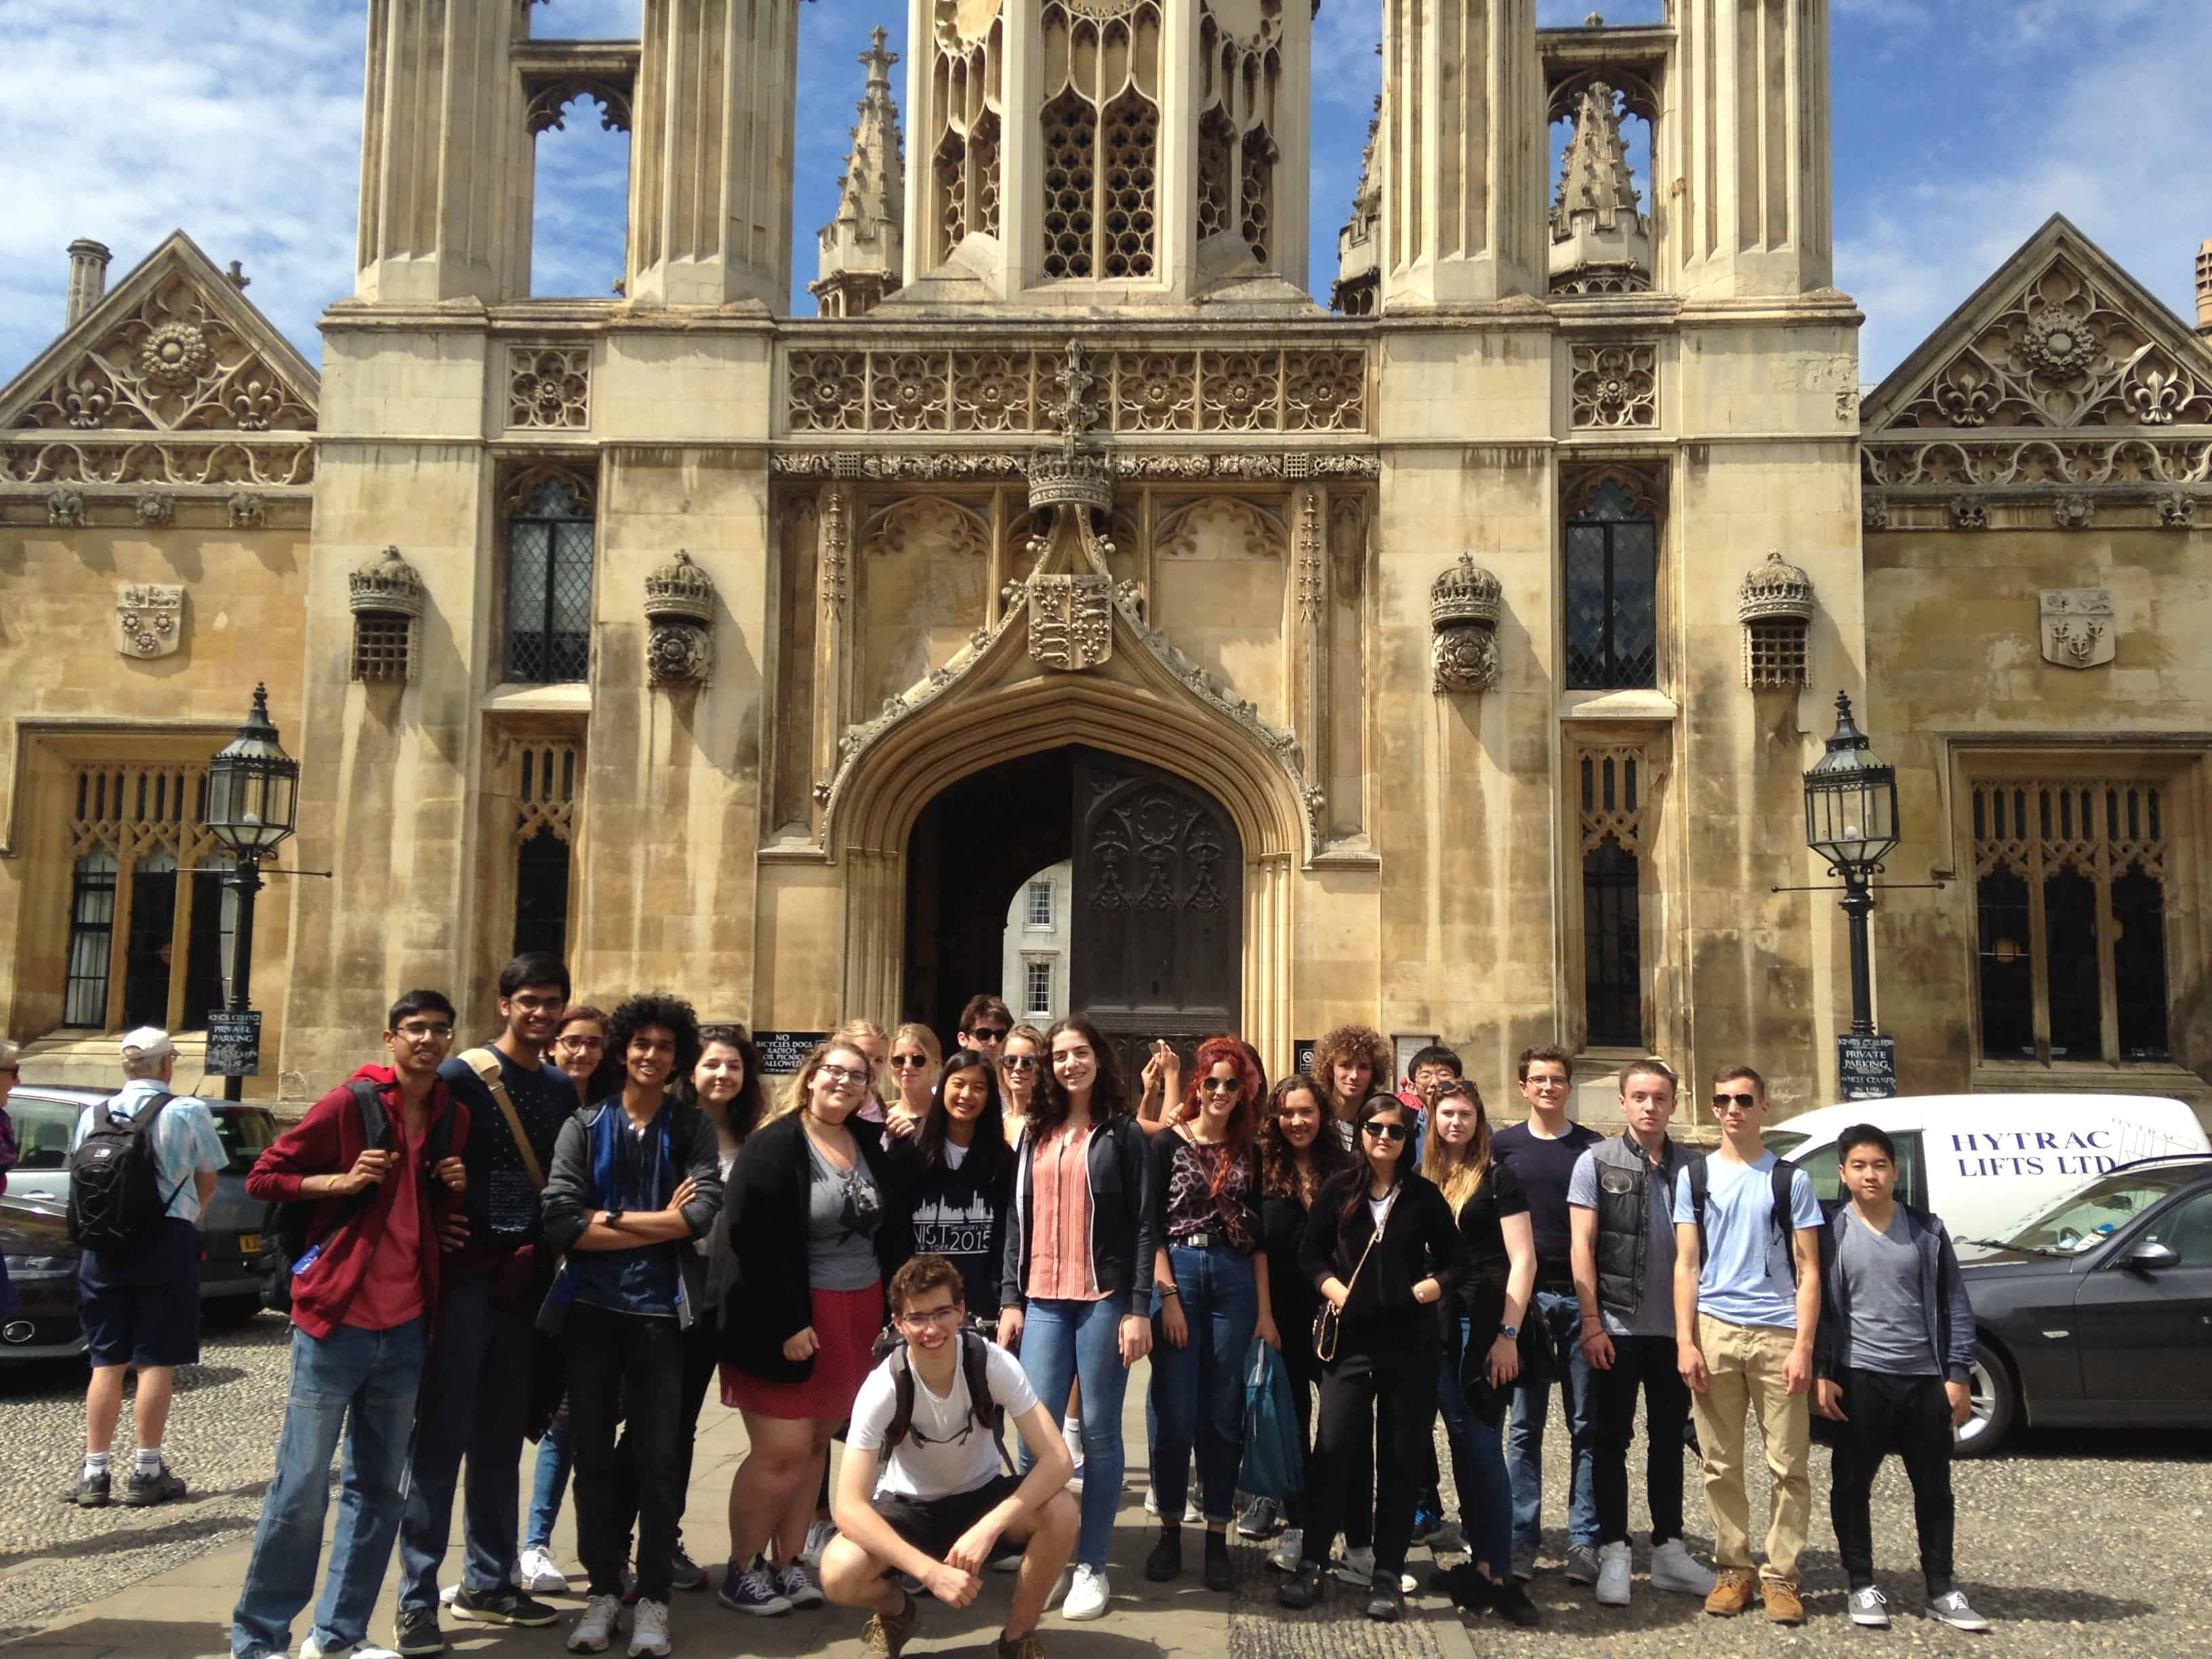 Summer school students visiting King's College part of the University of Cambridge